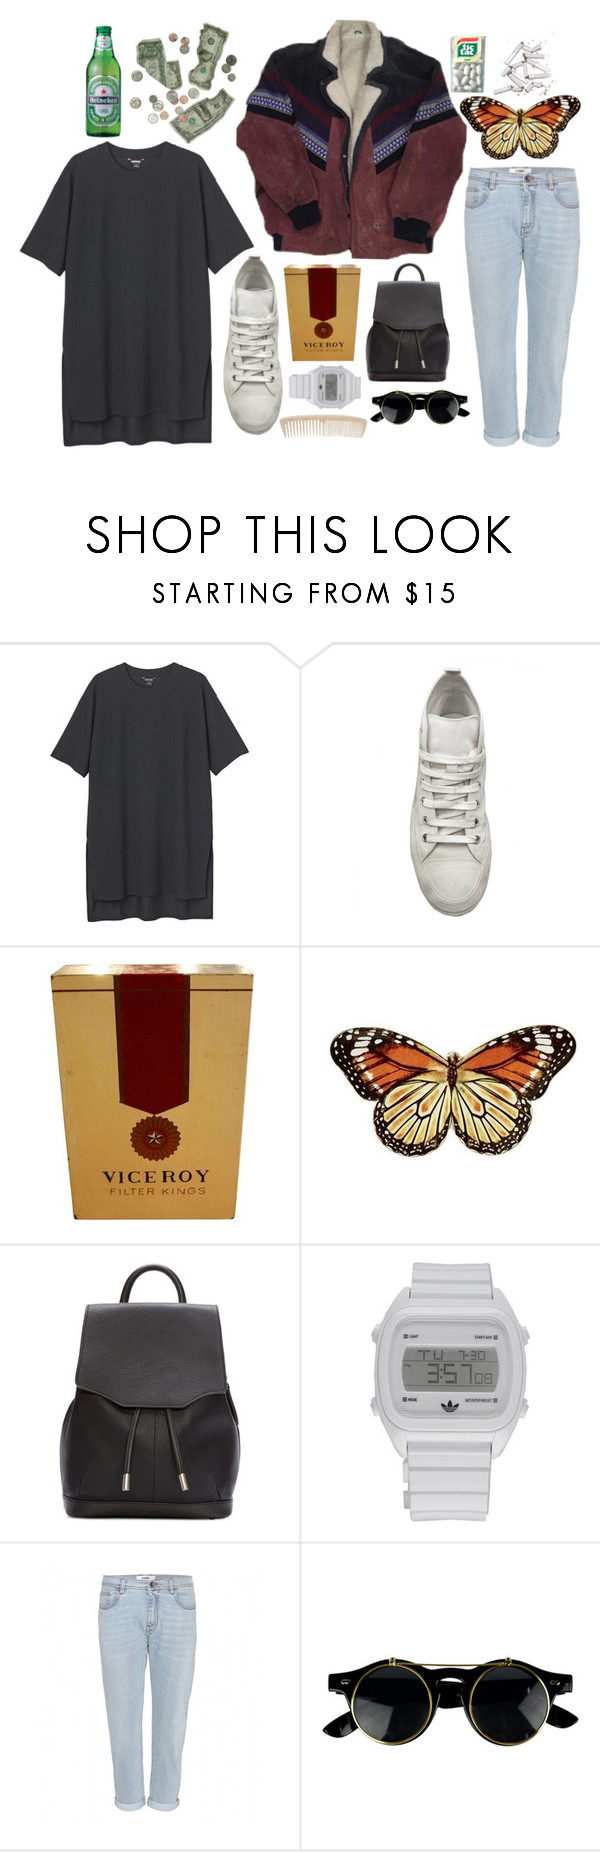 """*listens to mac demarco once*"" by imagicality ❤ liked on Polyvore featuring Monki, Ann Demeulemeester, Juliska, rag & bone, adidas and Fendi"